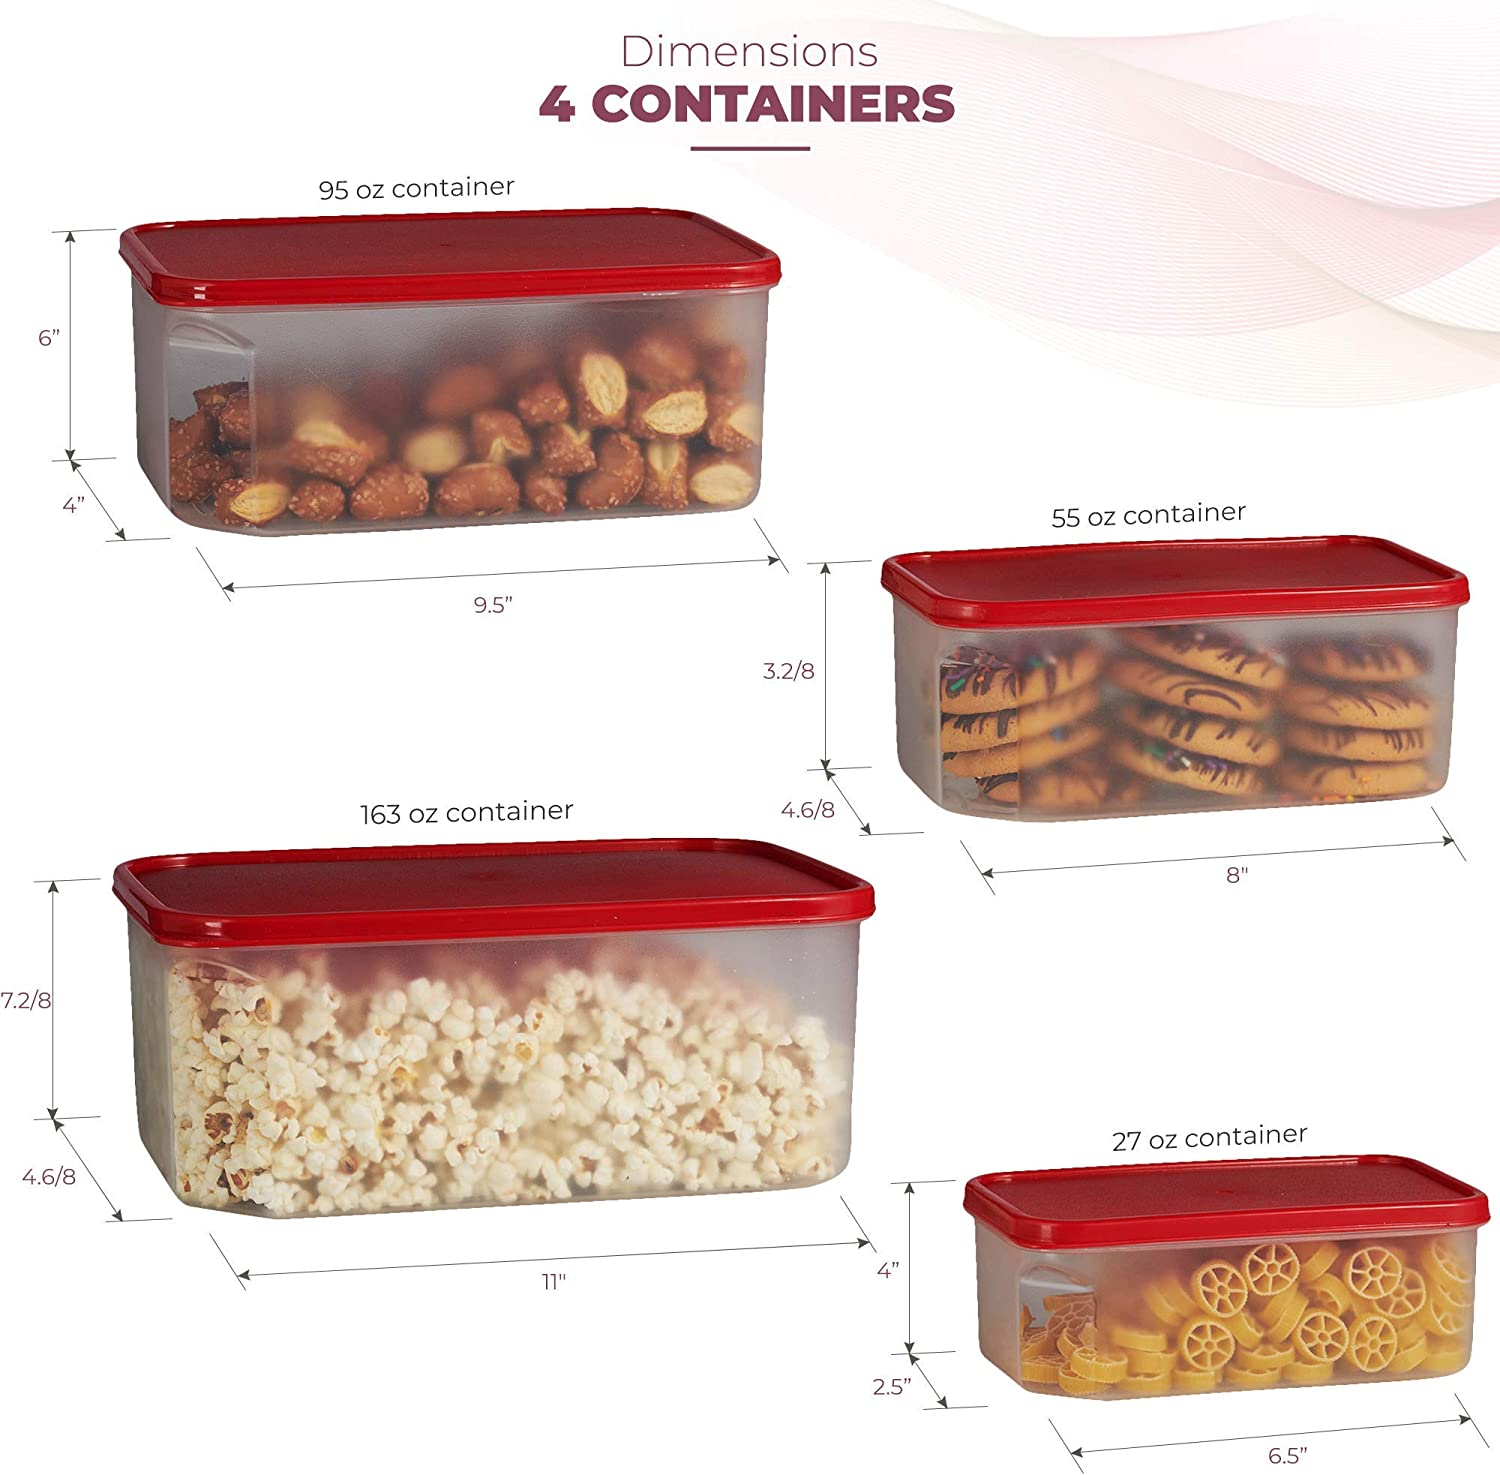 Microwave safe container you can use in microwave - Article : Things not to put in a microwave